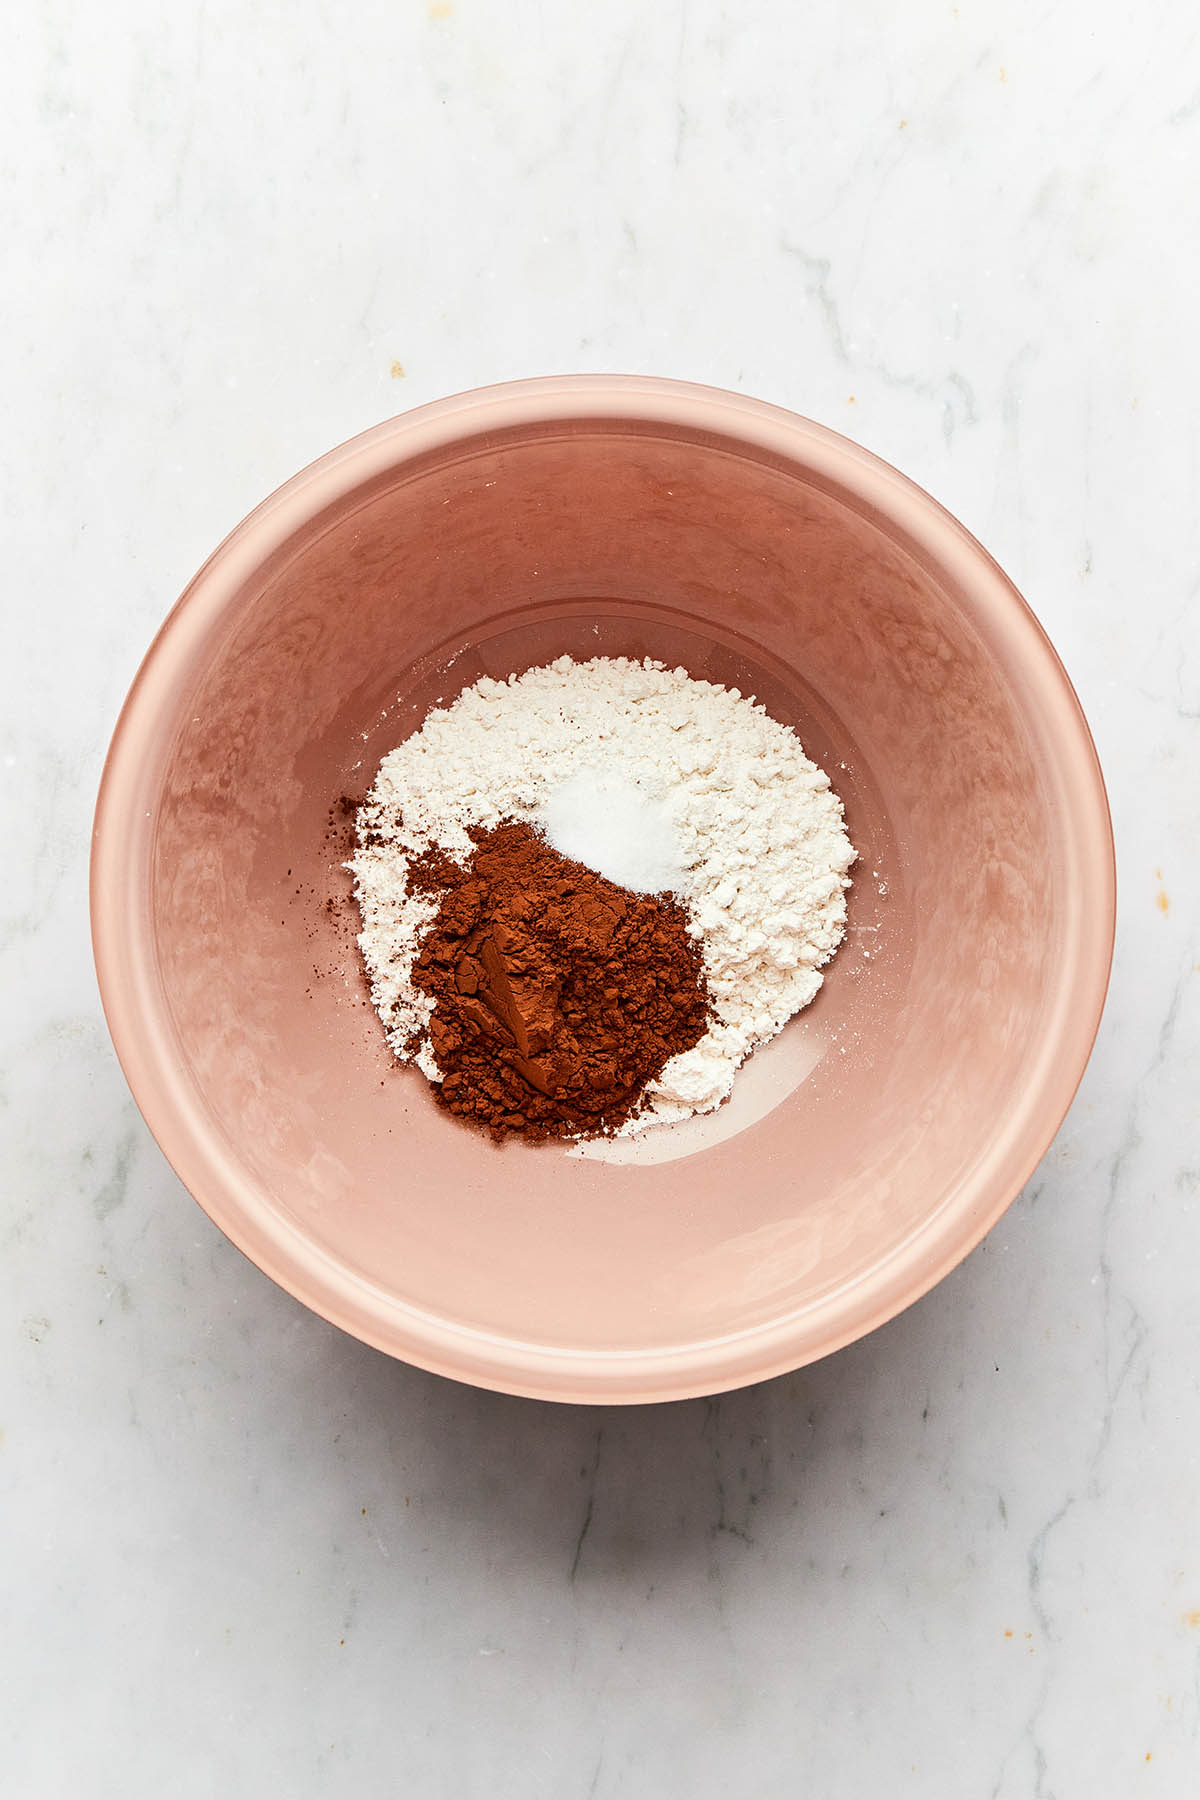 Flour, cocoa powder, and salt unmixed in a pink bowl.